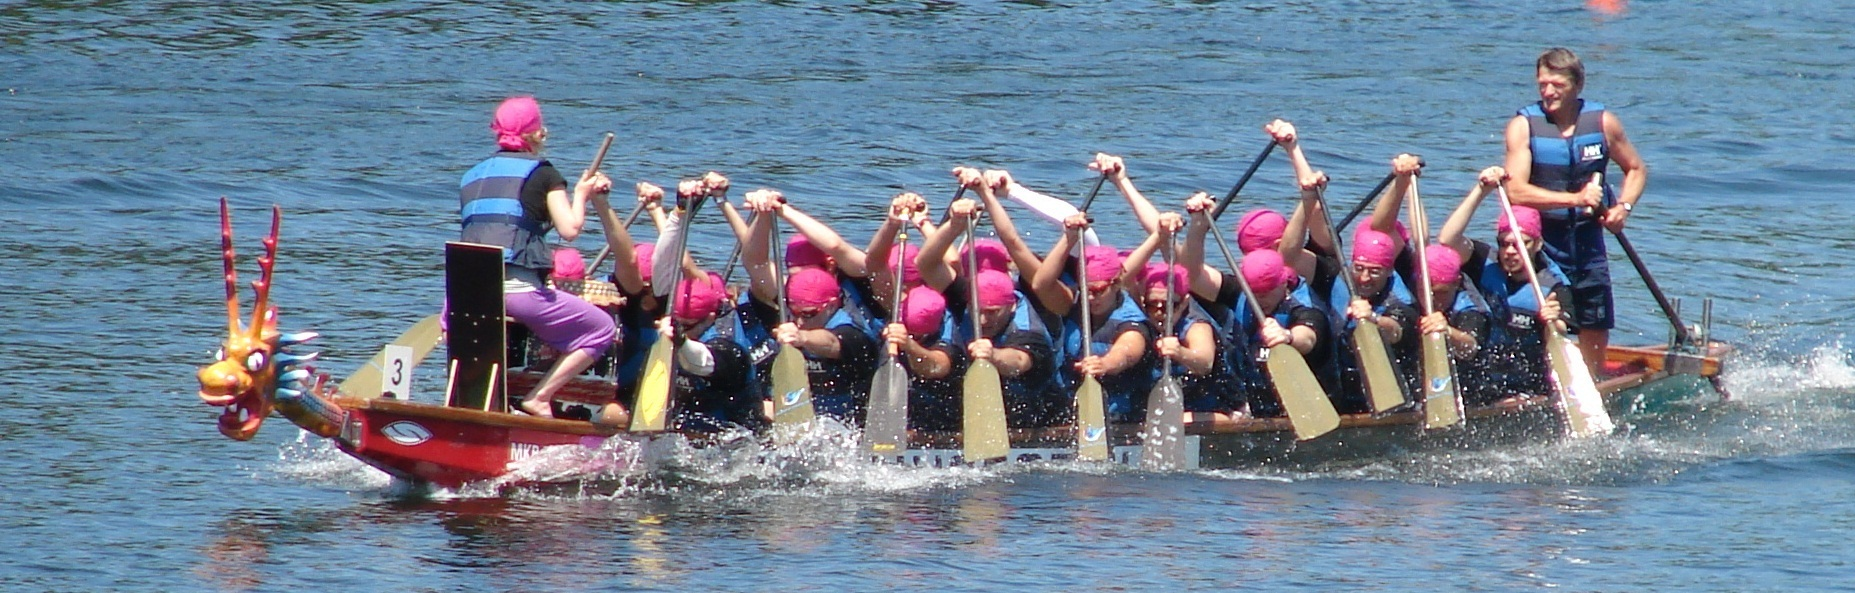 dragon boat picture